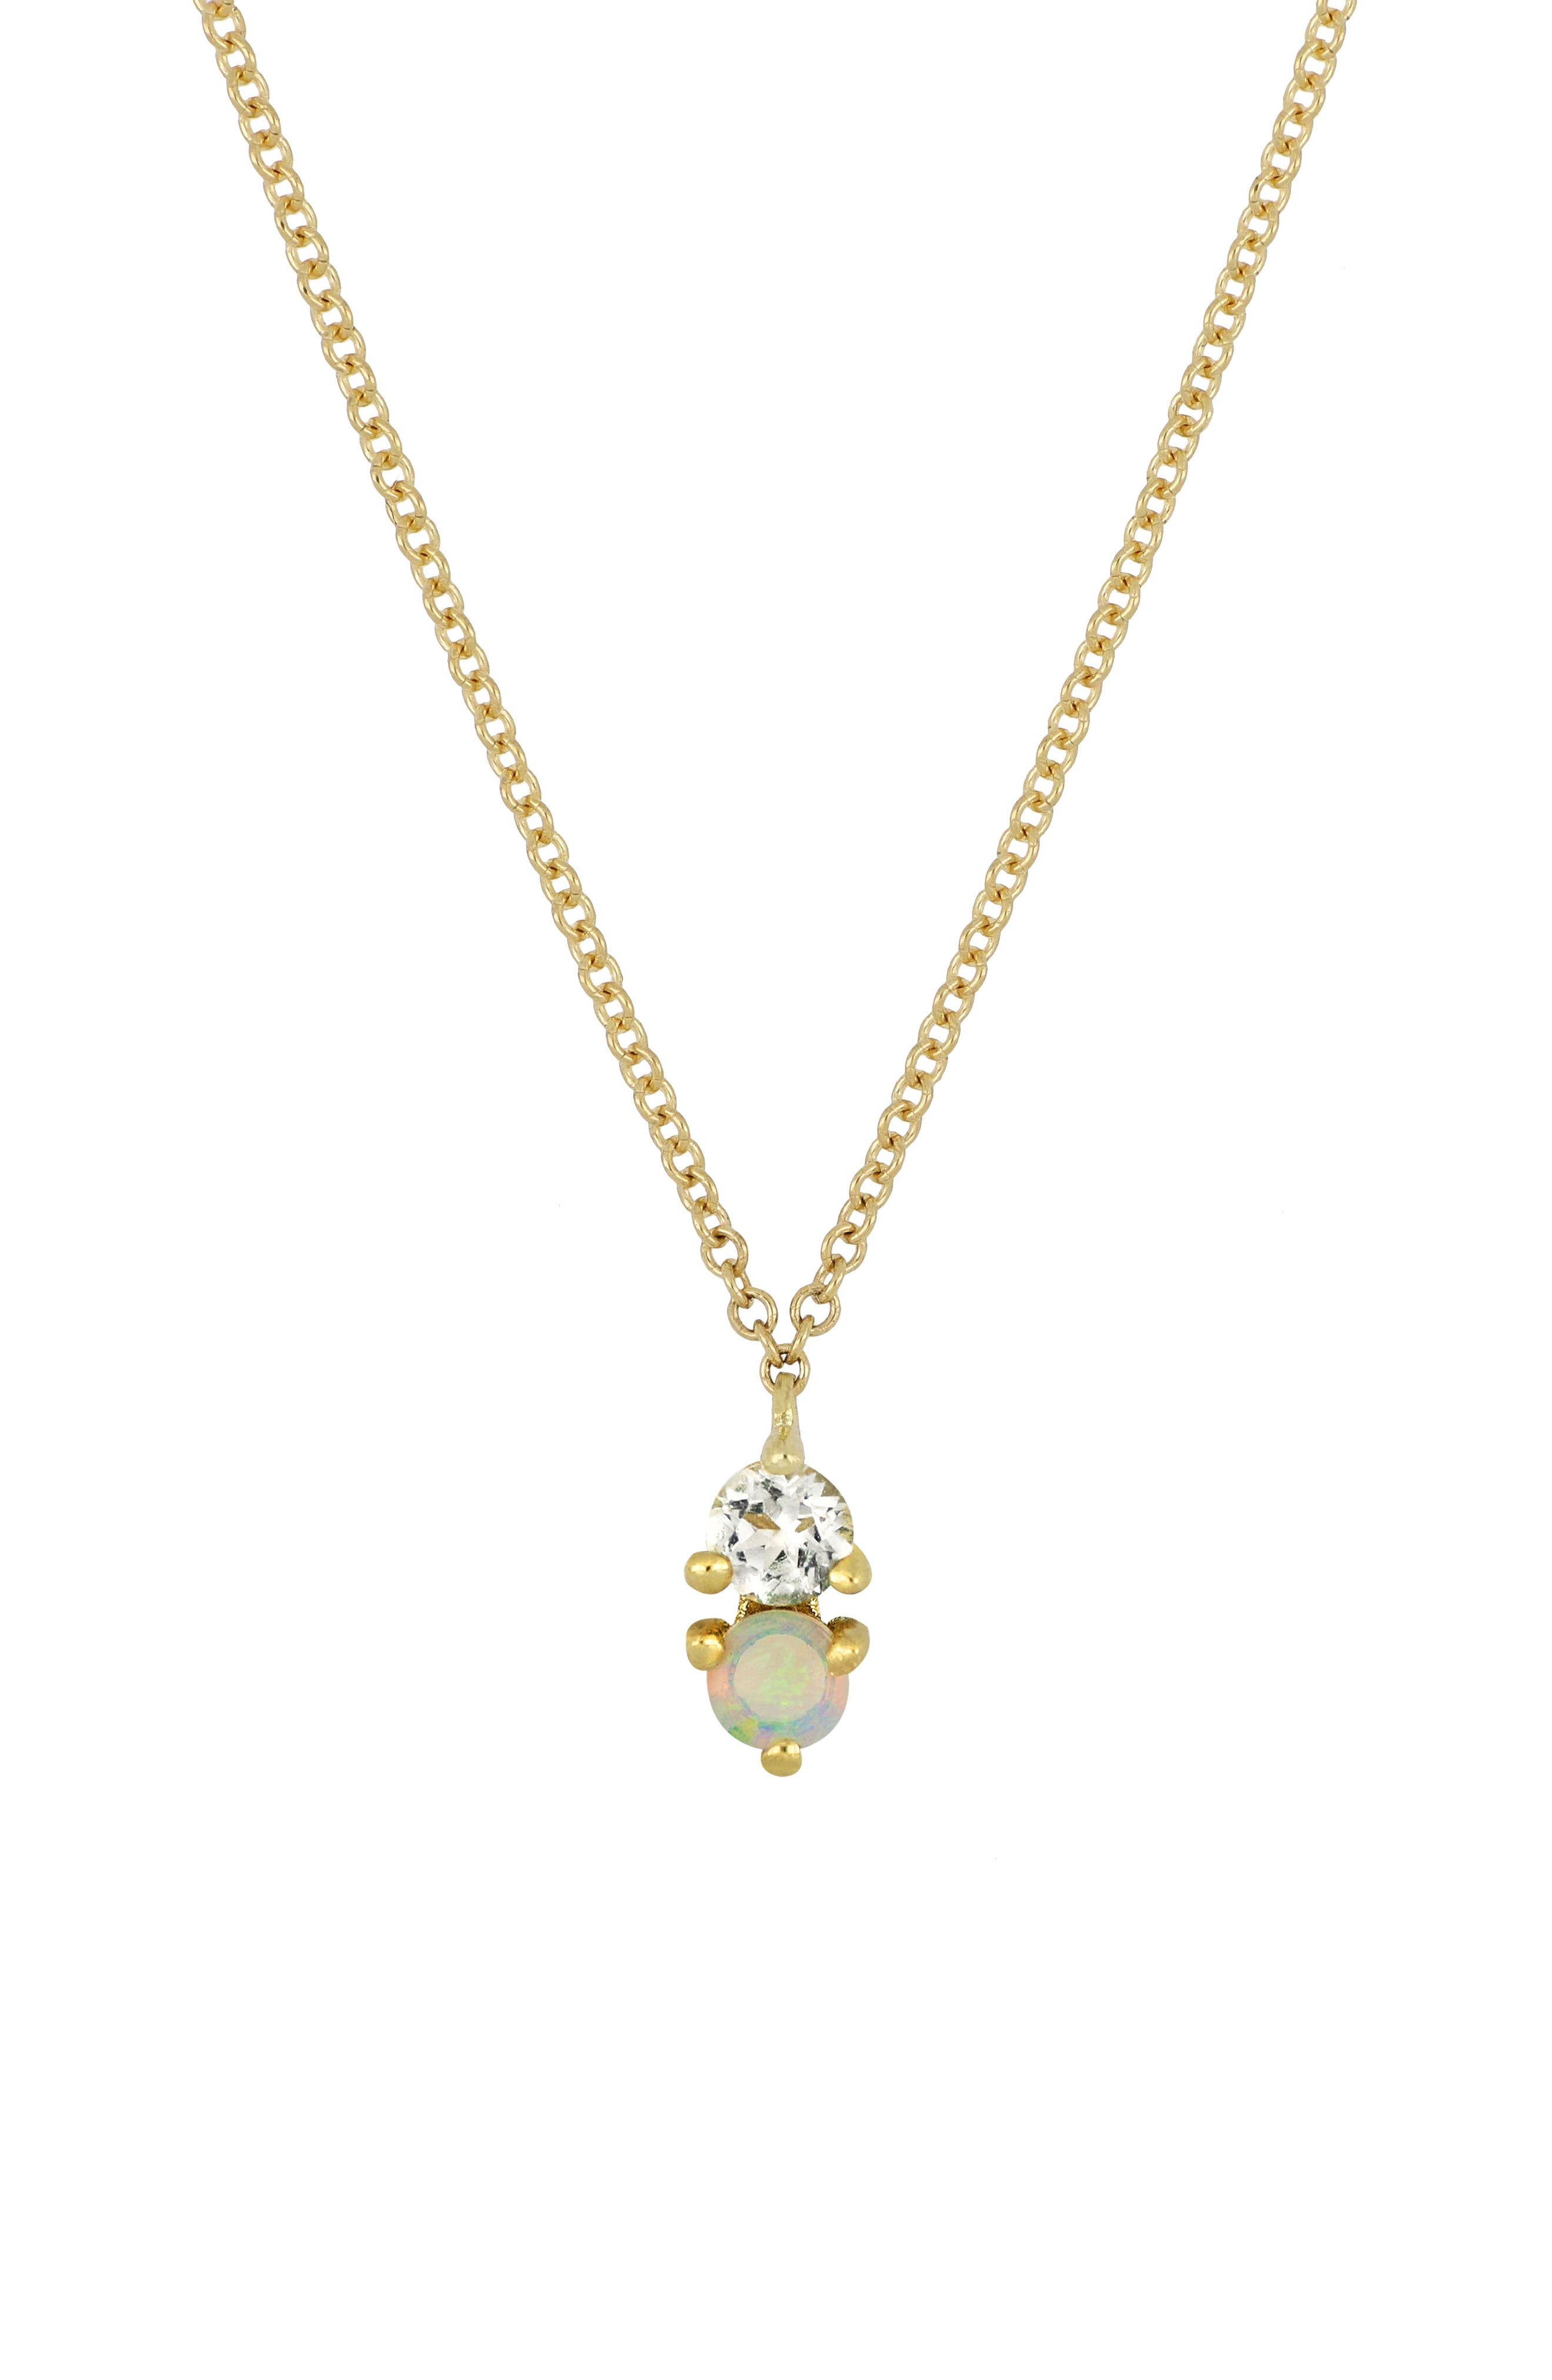 Birthstone Pendant Necklace,                             Main thumbnail 1, color,                             OCTOBER/ OPAL